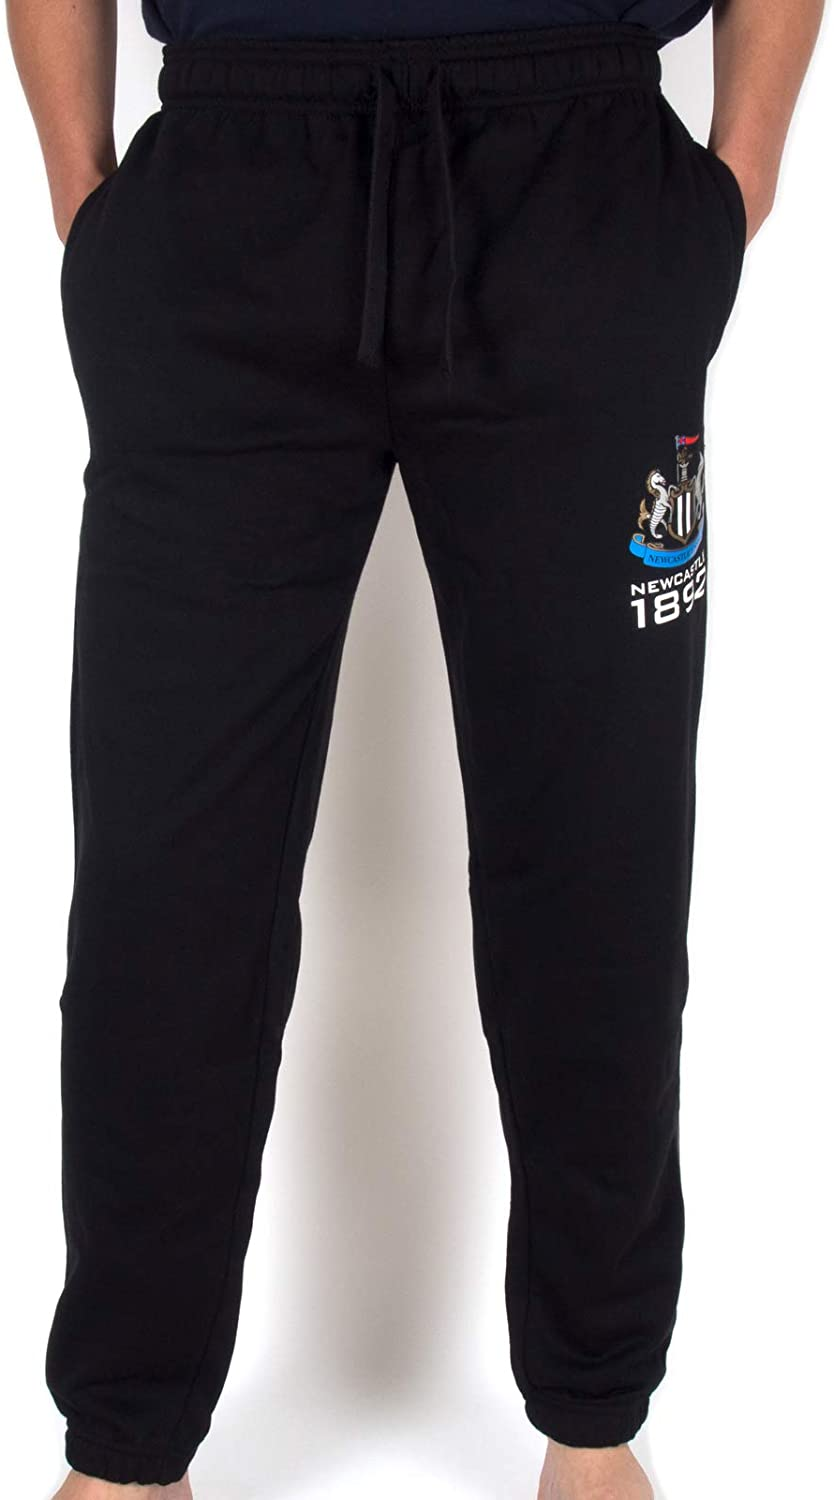 Newcastle United FC Official Soccer Gift Mens Fleece Joggers Jog Pants